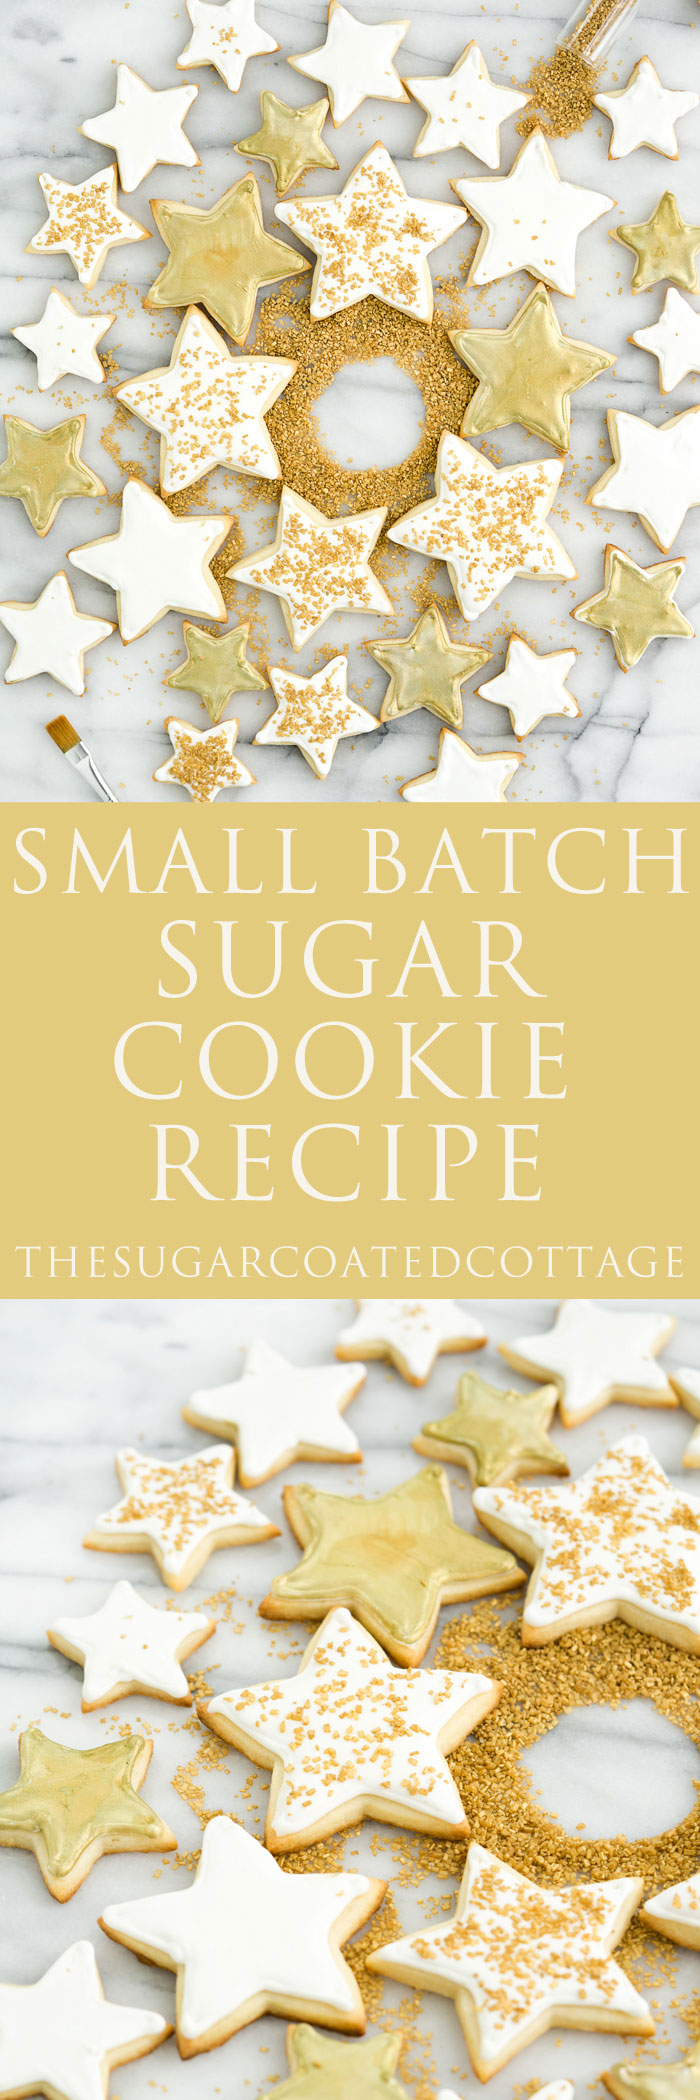 Small Batch Sugar Cookie Recipe. The best sugar cookie recipe when you don't want to make too many. | thesugarcoatedcottage.com cookies, christmas, holidays